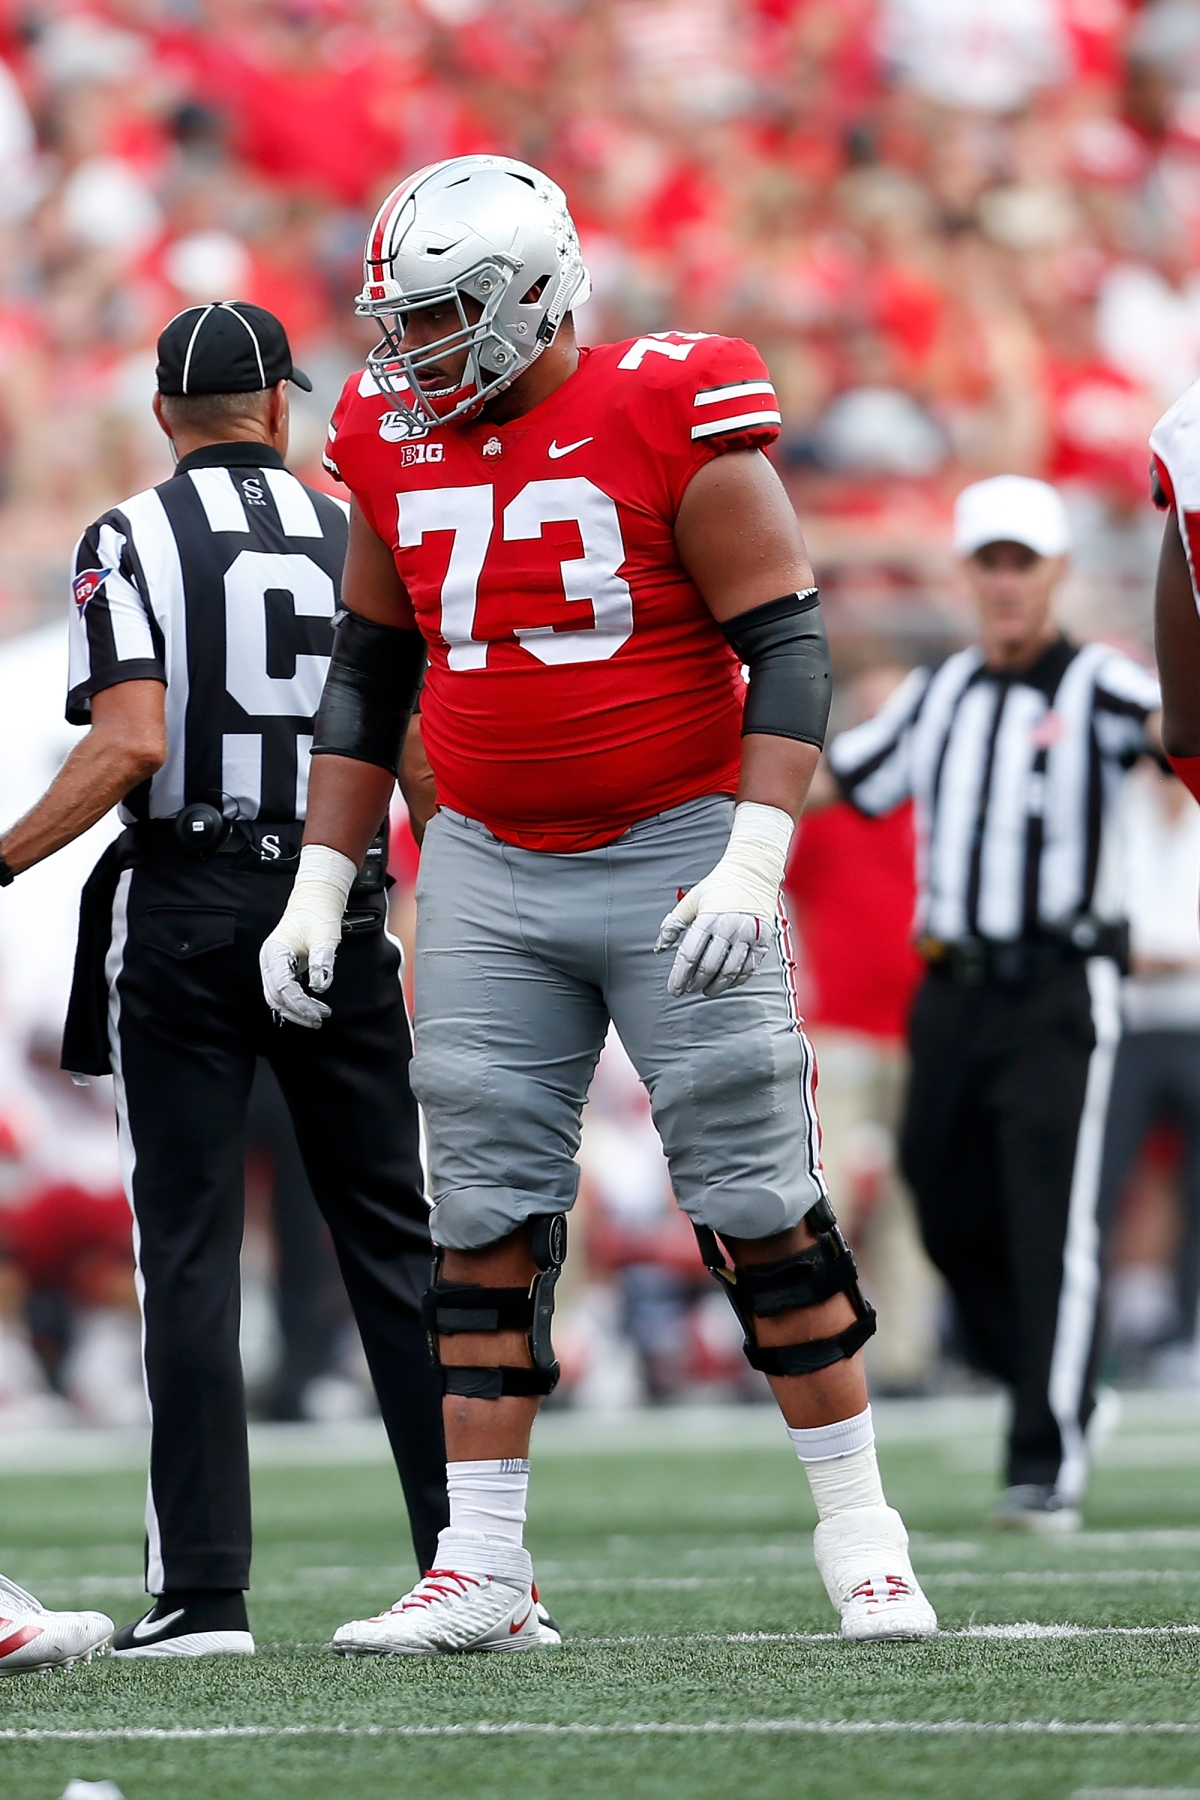 Ohio State guard Jonah Jackson was drafted by the Detroit Lions in the third round of the NFL draft on Friday night.